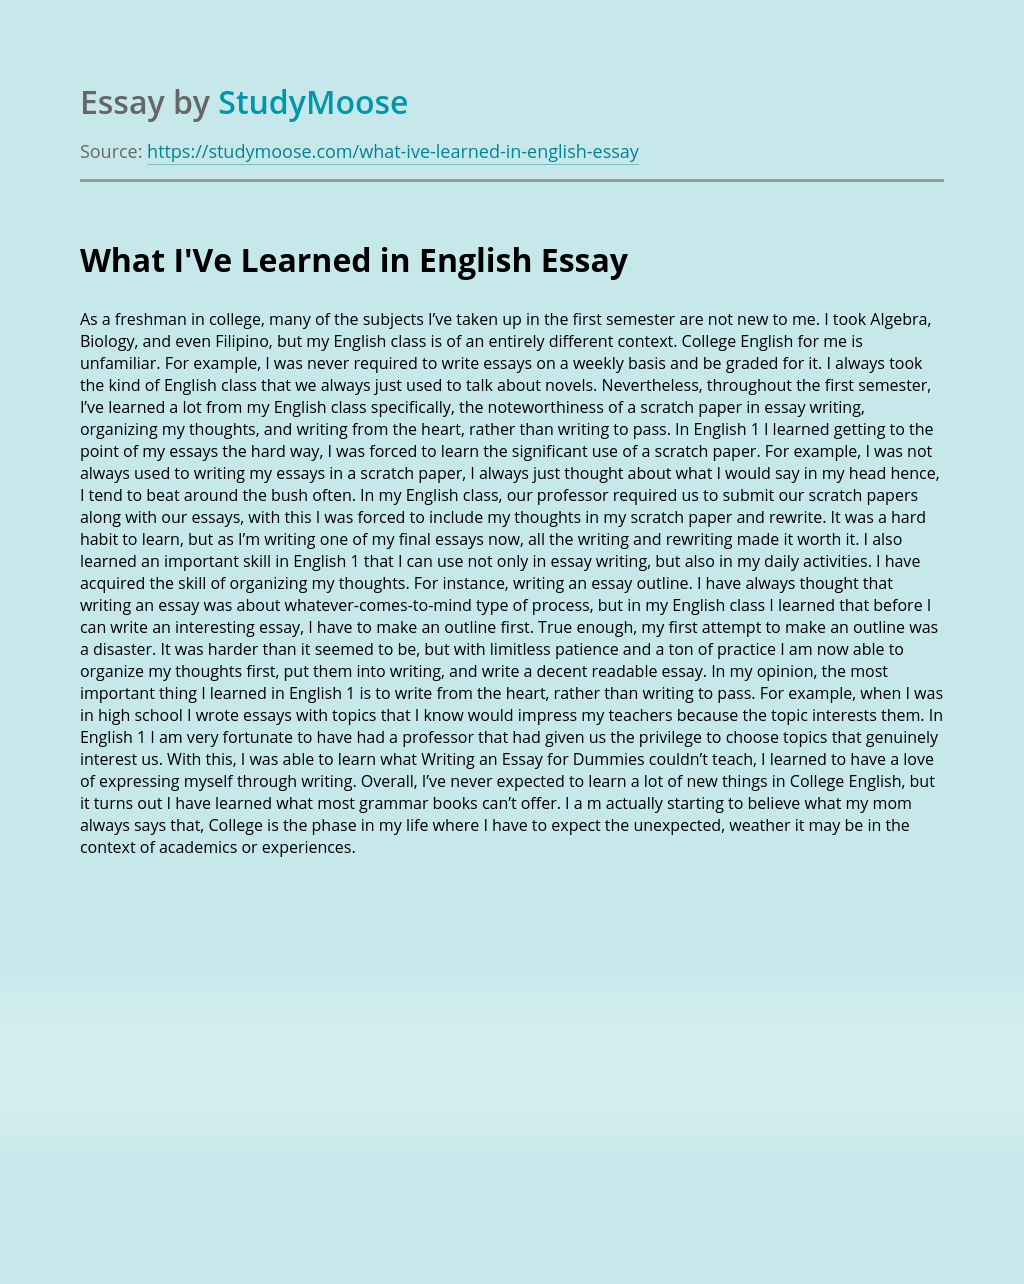 What I'Ve Learned in English?